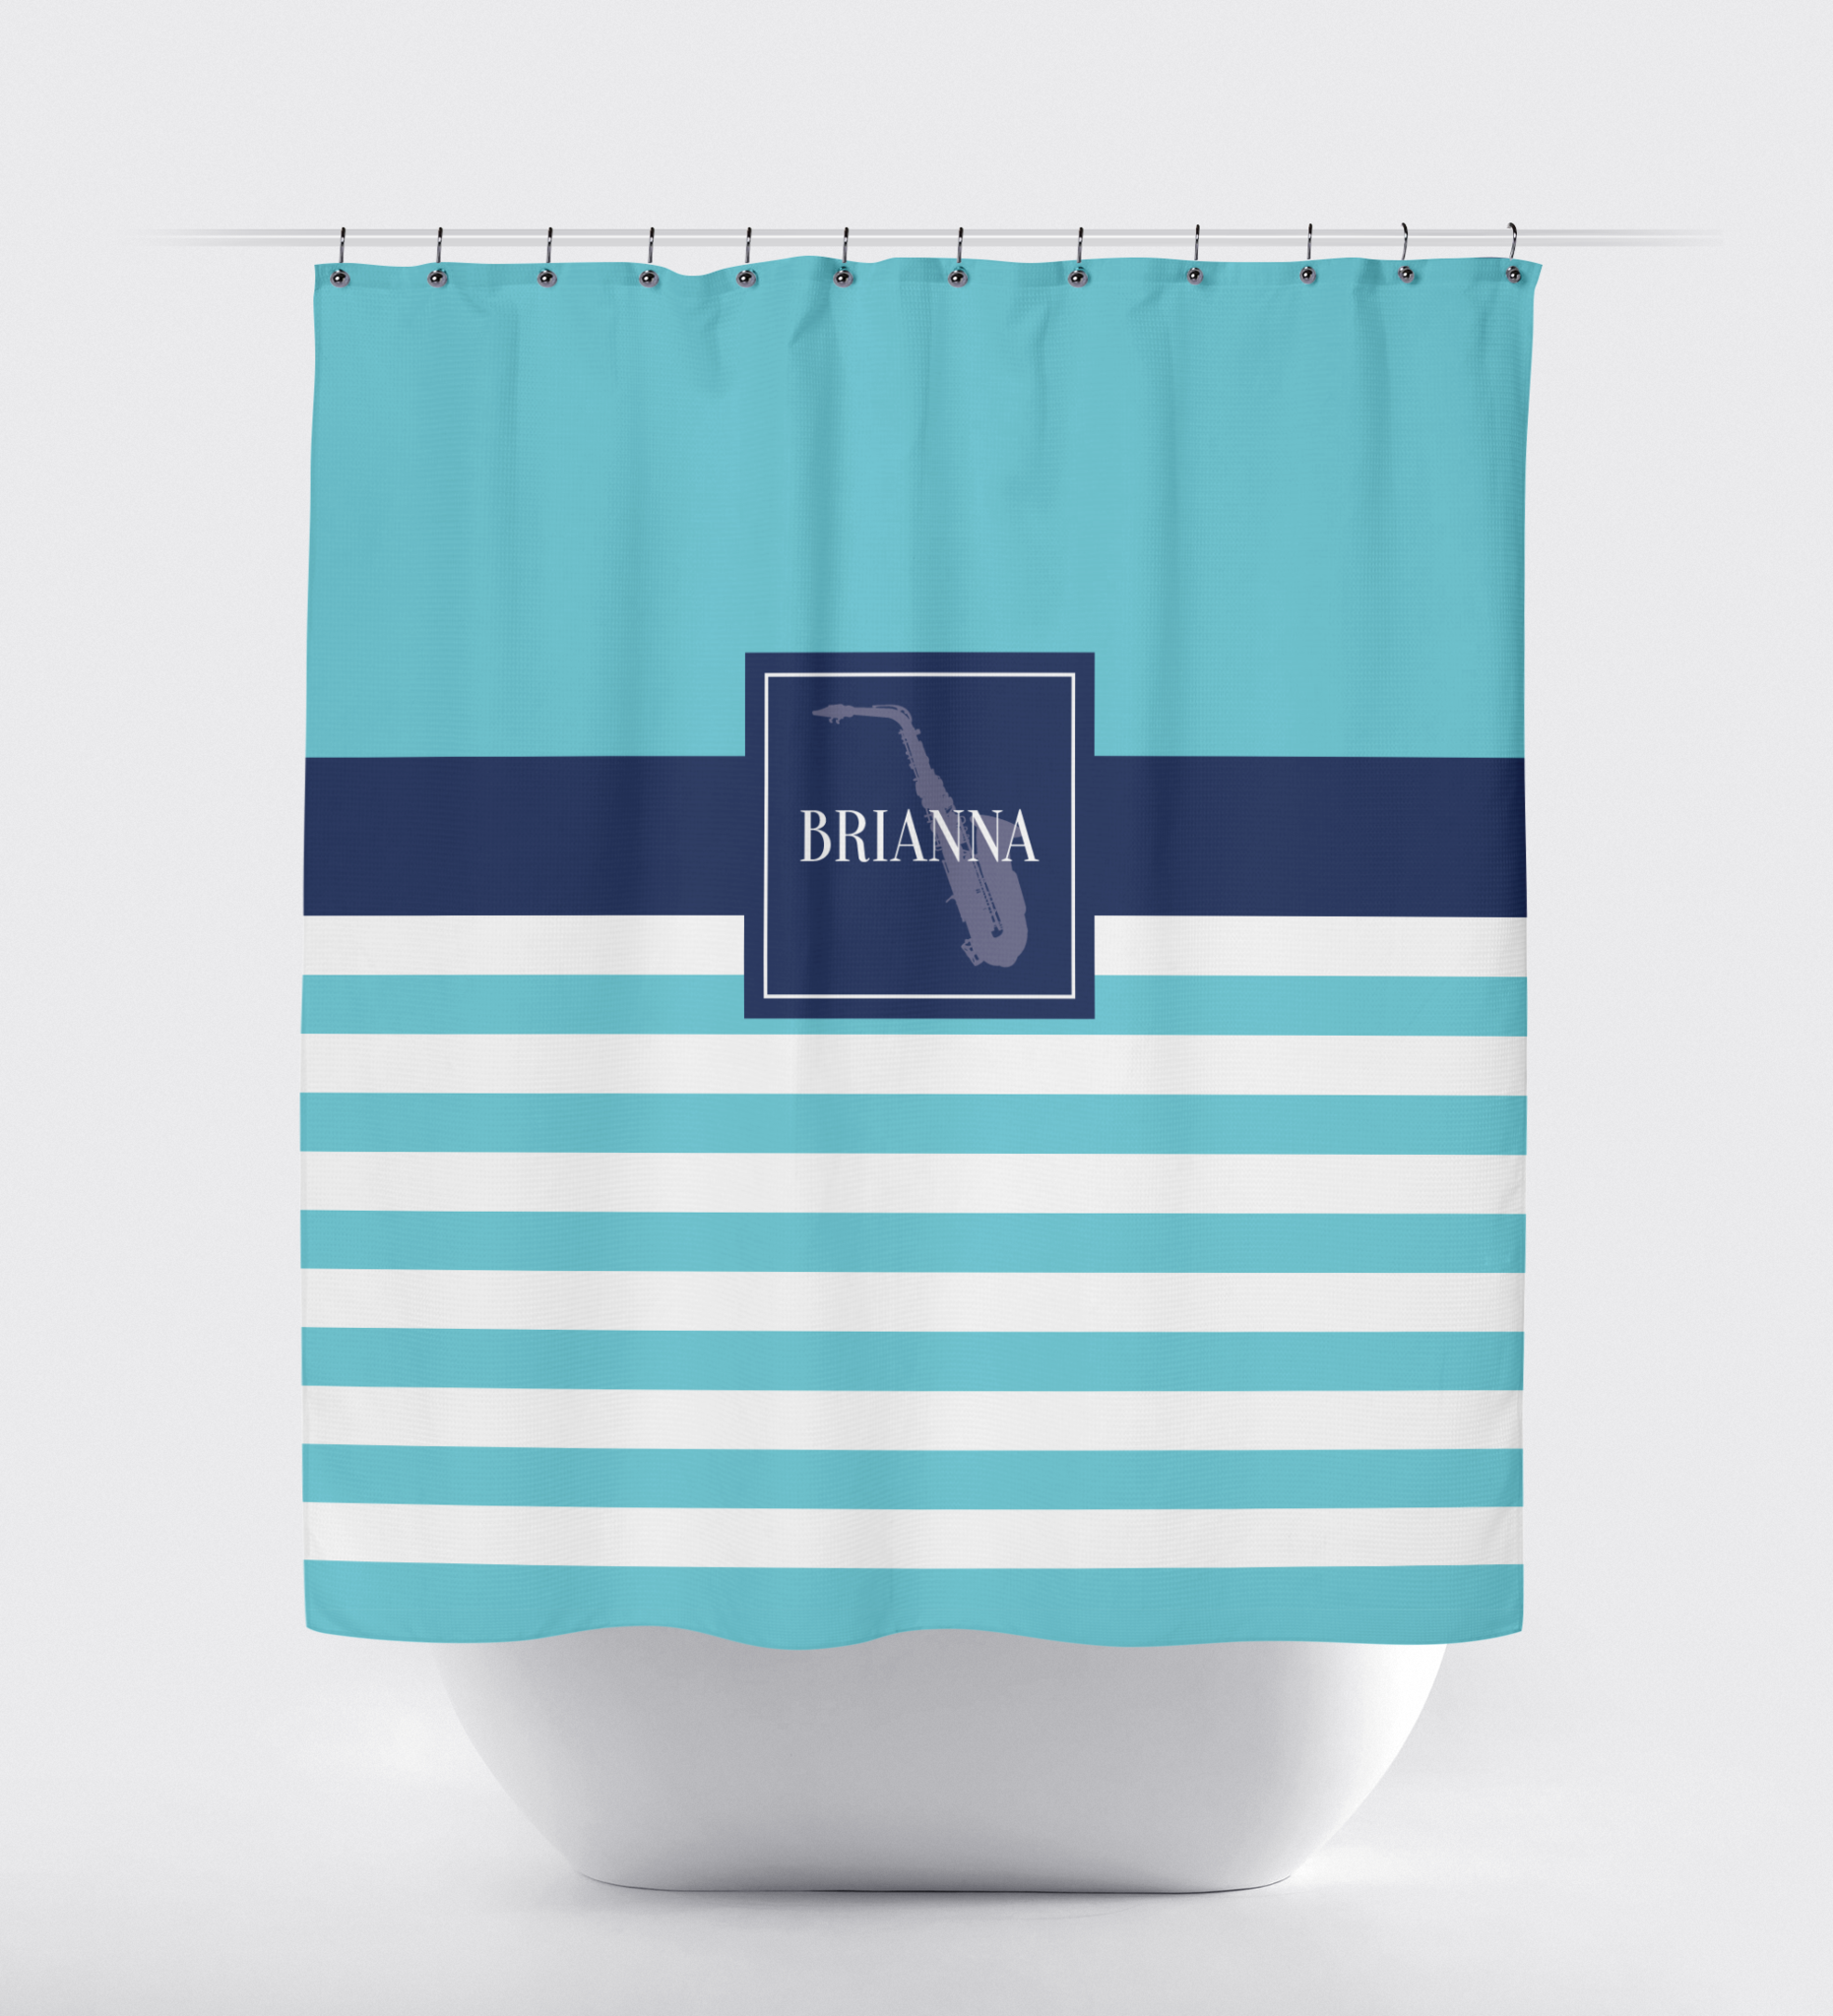 Any Musical Instrument Shower Curtain Saxophone Aqua Navy Blue And White Choose Any Colors